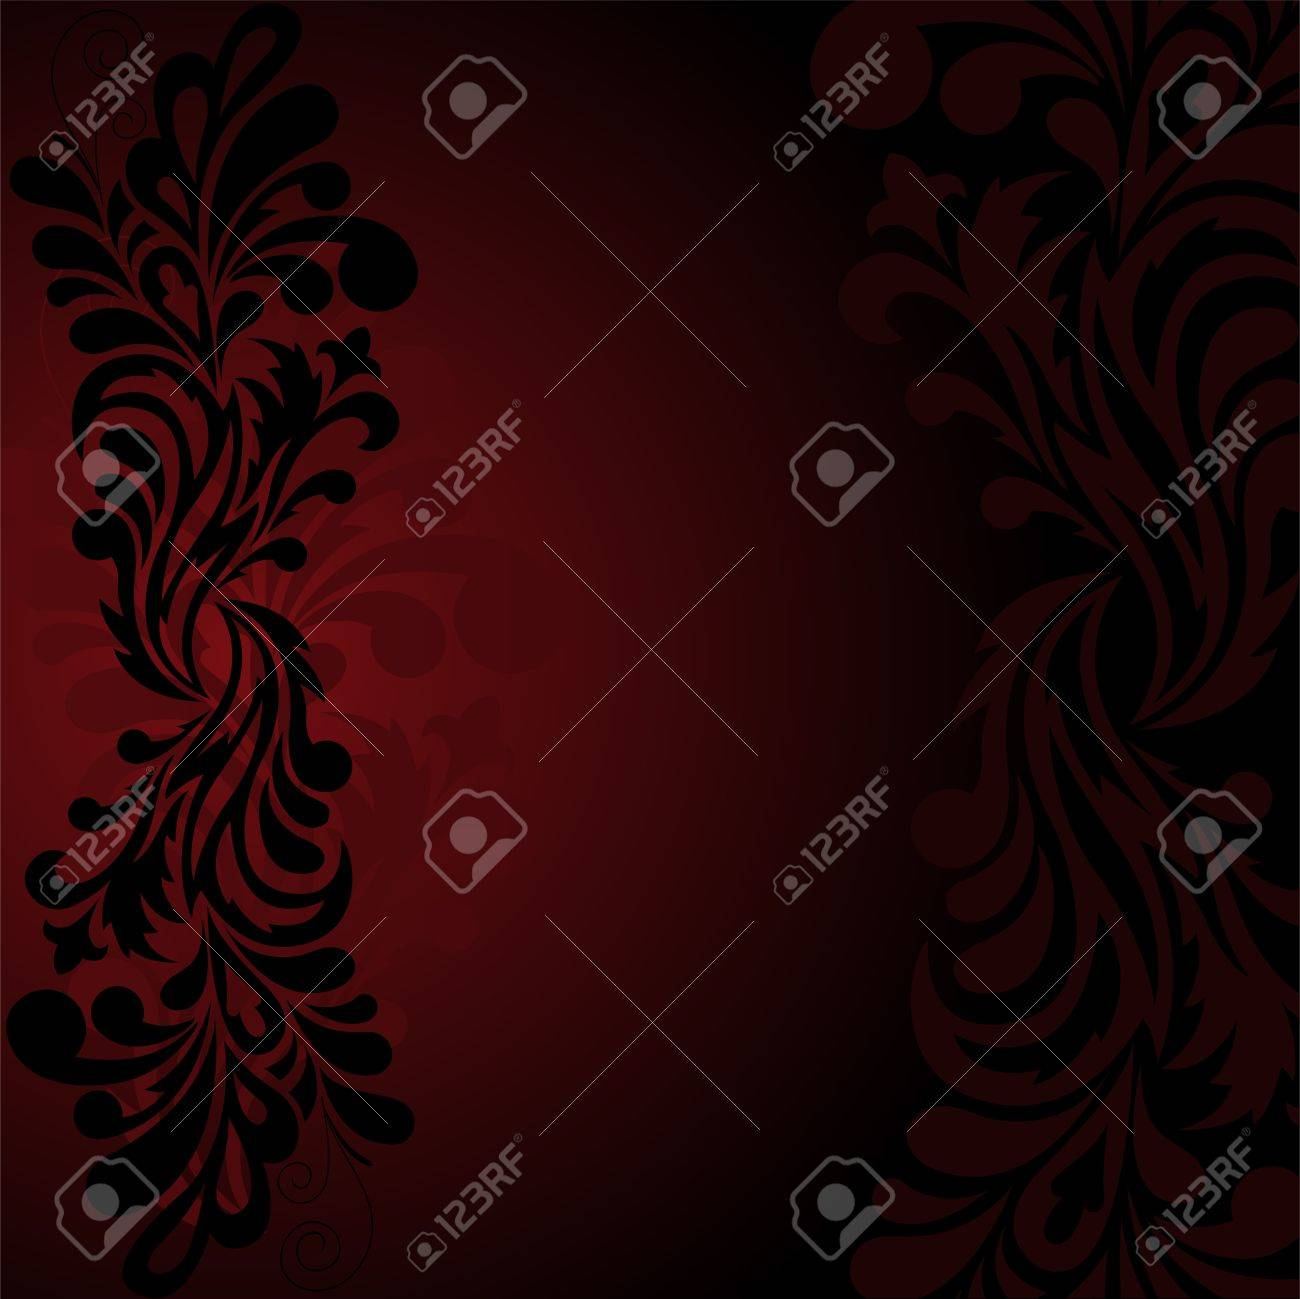 beautiful black ornament on the dark red background - 9716497